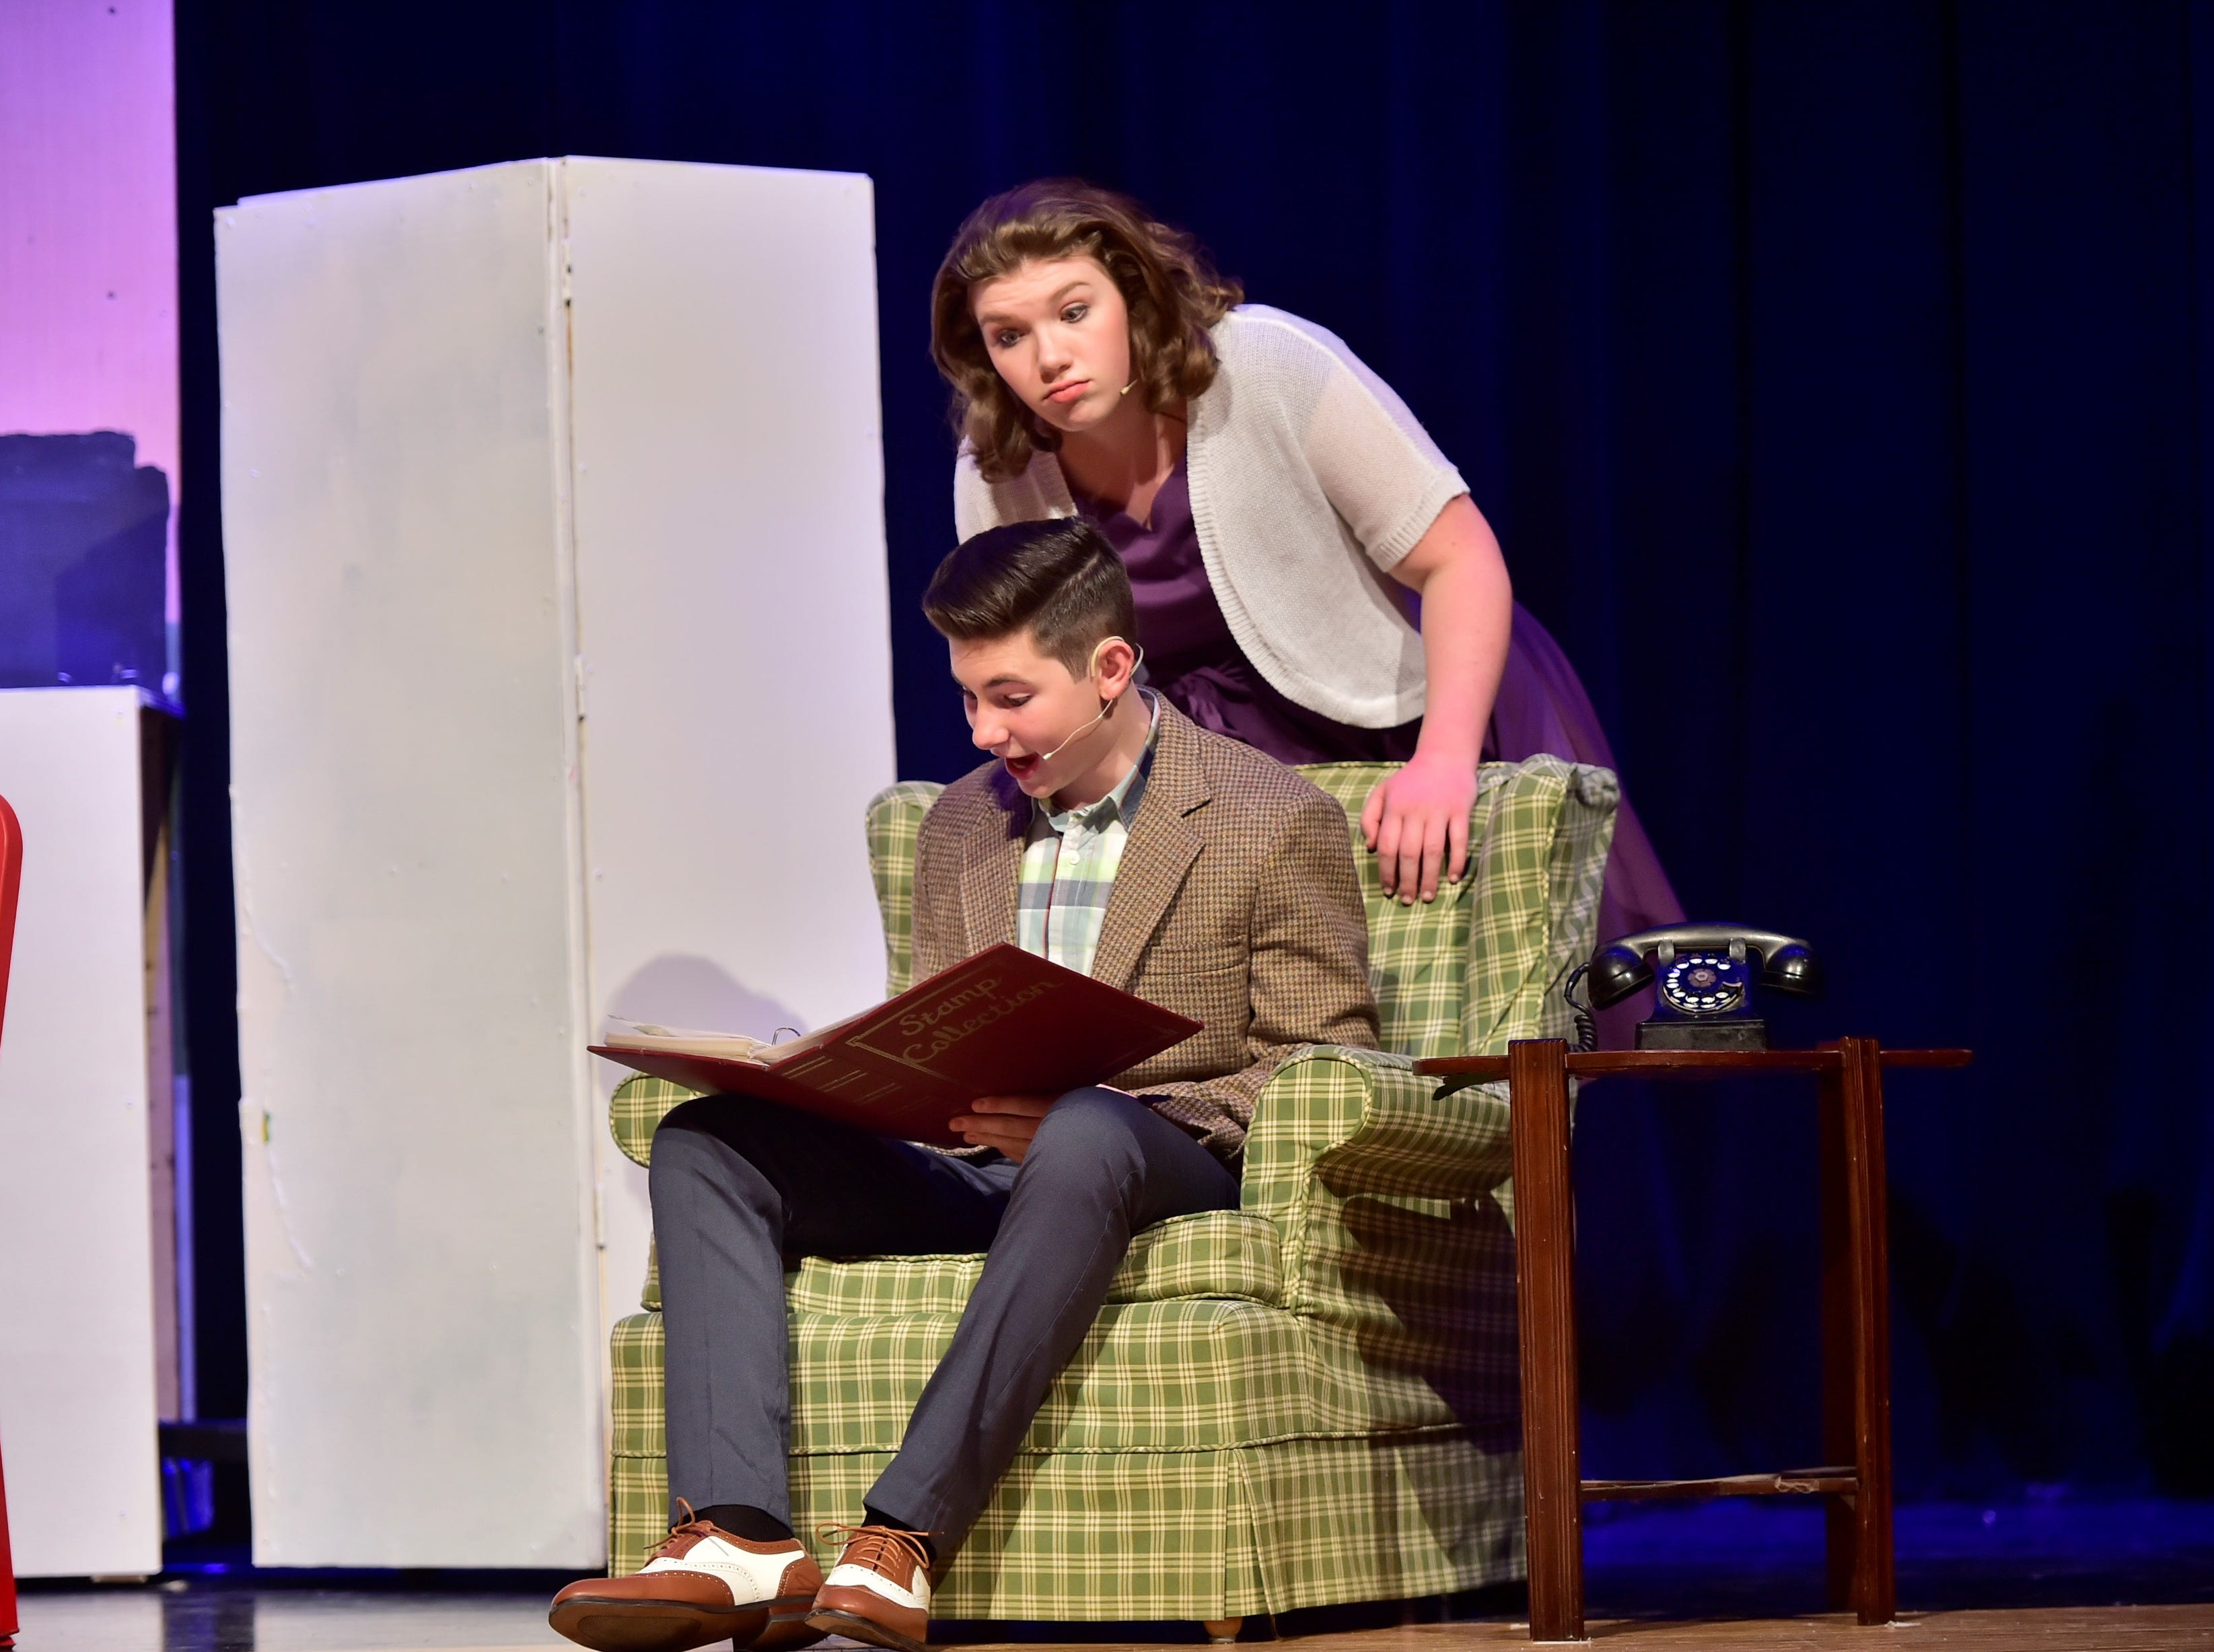 """Jude Musolino (Sid Sorokin), sitting, and Taylor Stevens (Babe) rehearse a scene  from """"The Pajama Game,"""" on Sunday, March 10, 2019, at Waynesboro Area Senior High School. The musical, based on the 1953 novel, """"7 1/2 Cents"""" by Richard Bissell, tells the story of a pajama factory where workers are fighting for a raise of 7 1/2 cents. Showtimes for Waynesboro Area School District's All-School Production of """"The Pajama Game"""" are 7 p.m. Friday and Saturday, March 15 and 16, and 2 p.m. Sunday, March 17 in the high school auditorium. For choose-your-seat tickets, $10 for adults and $6 for children under 12, go to https://washsmusic.ticketleap.com/the-pajama-game/. General admission tickets will also be sold at the door."""